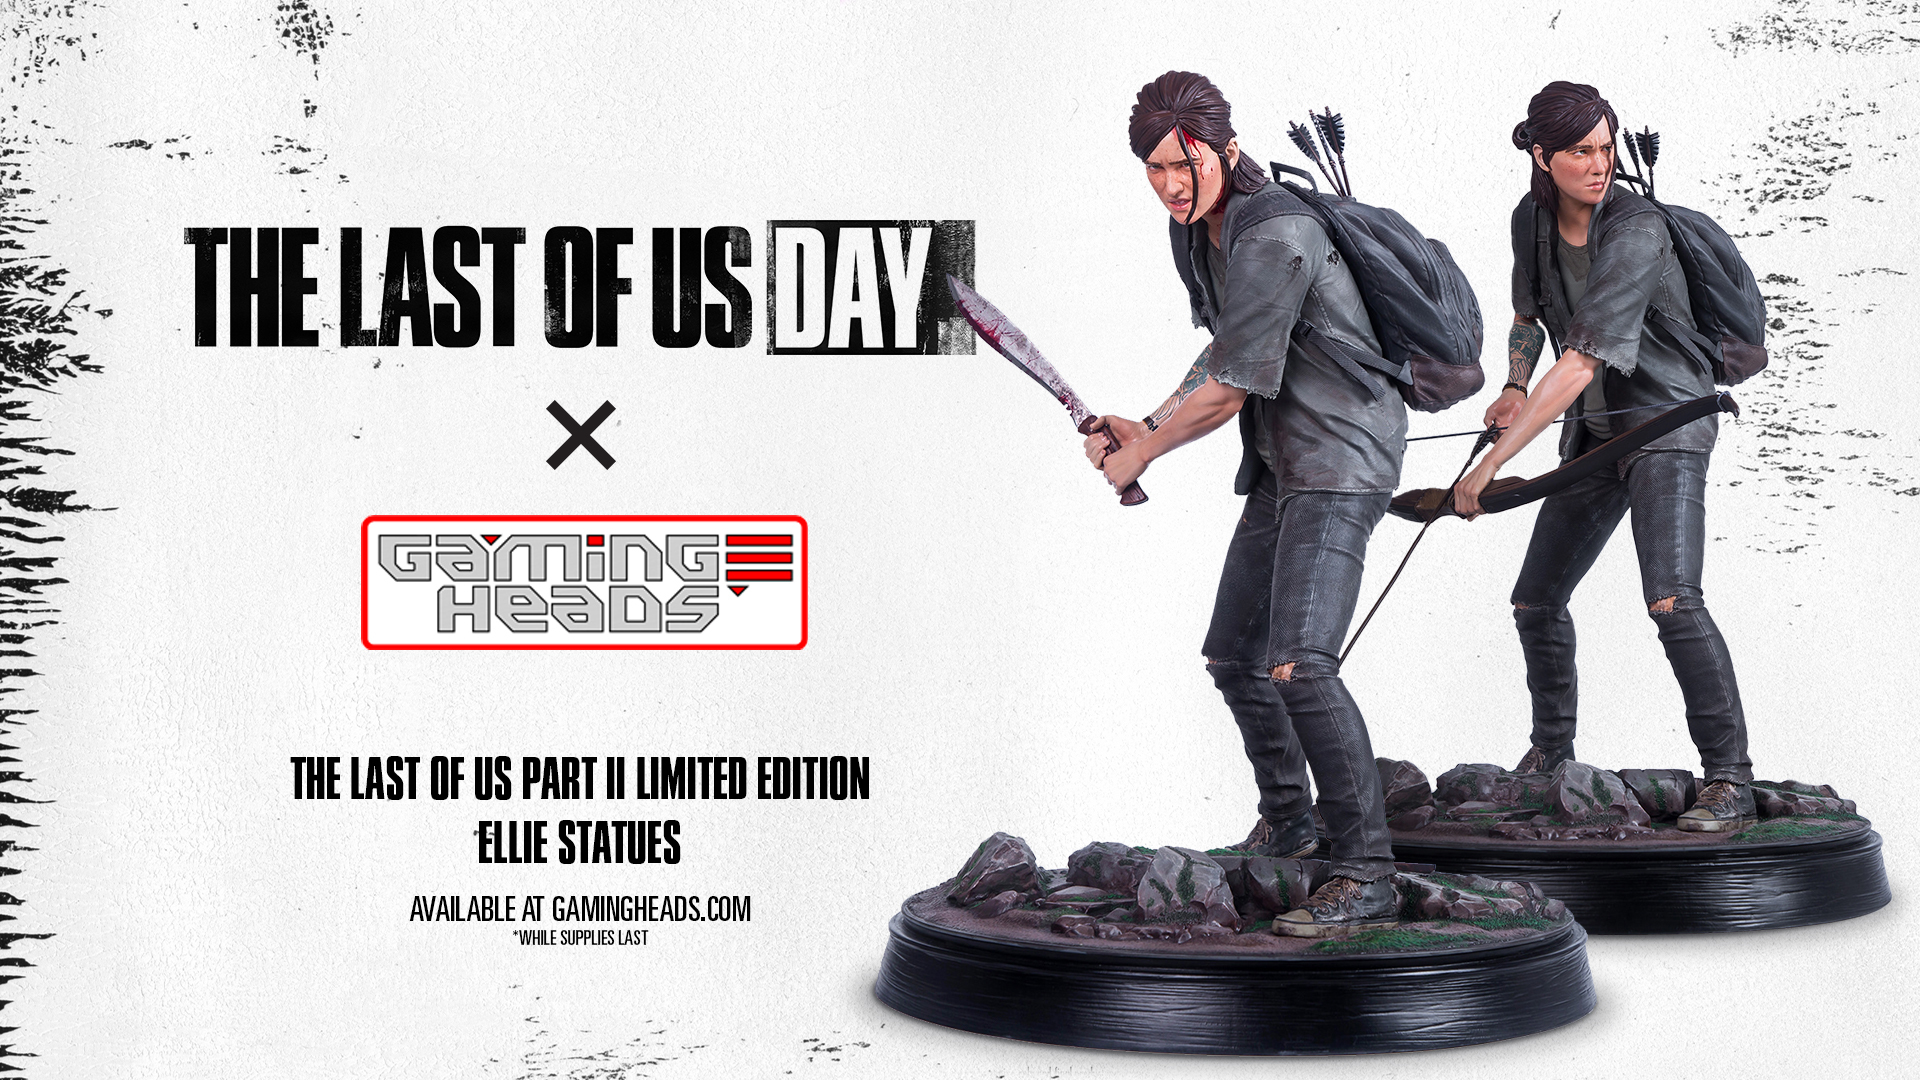 The Last Of Us.Day Limited Edition Statues